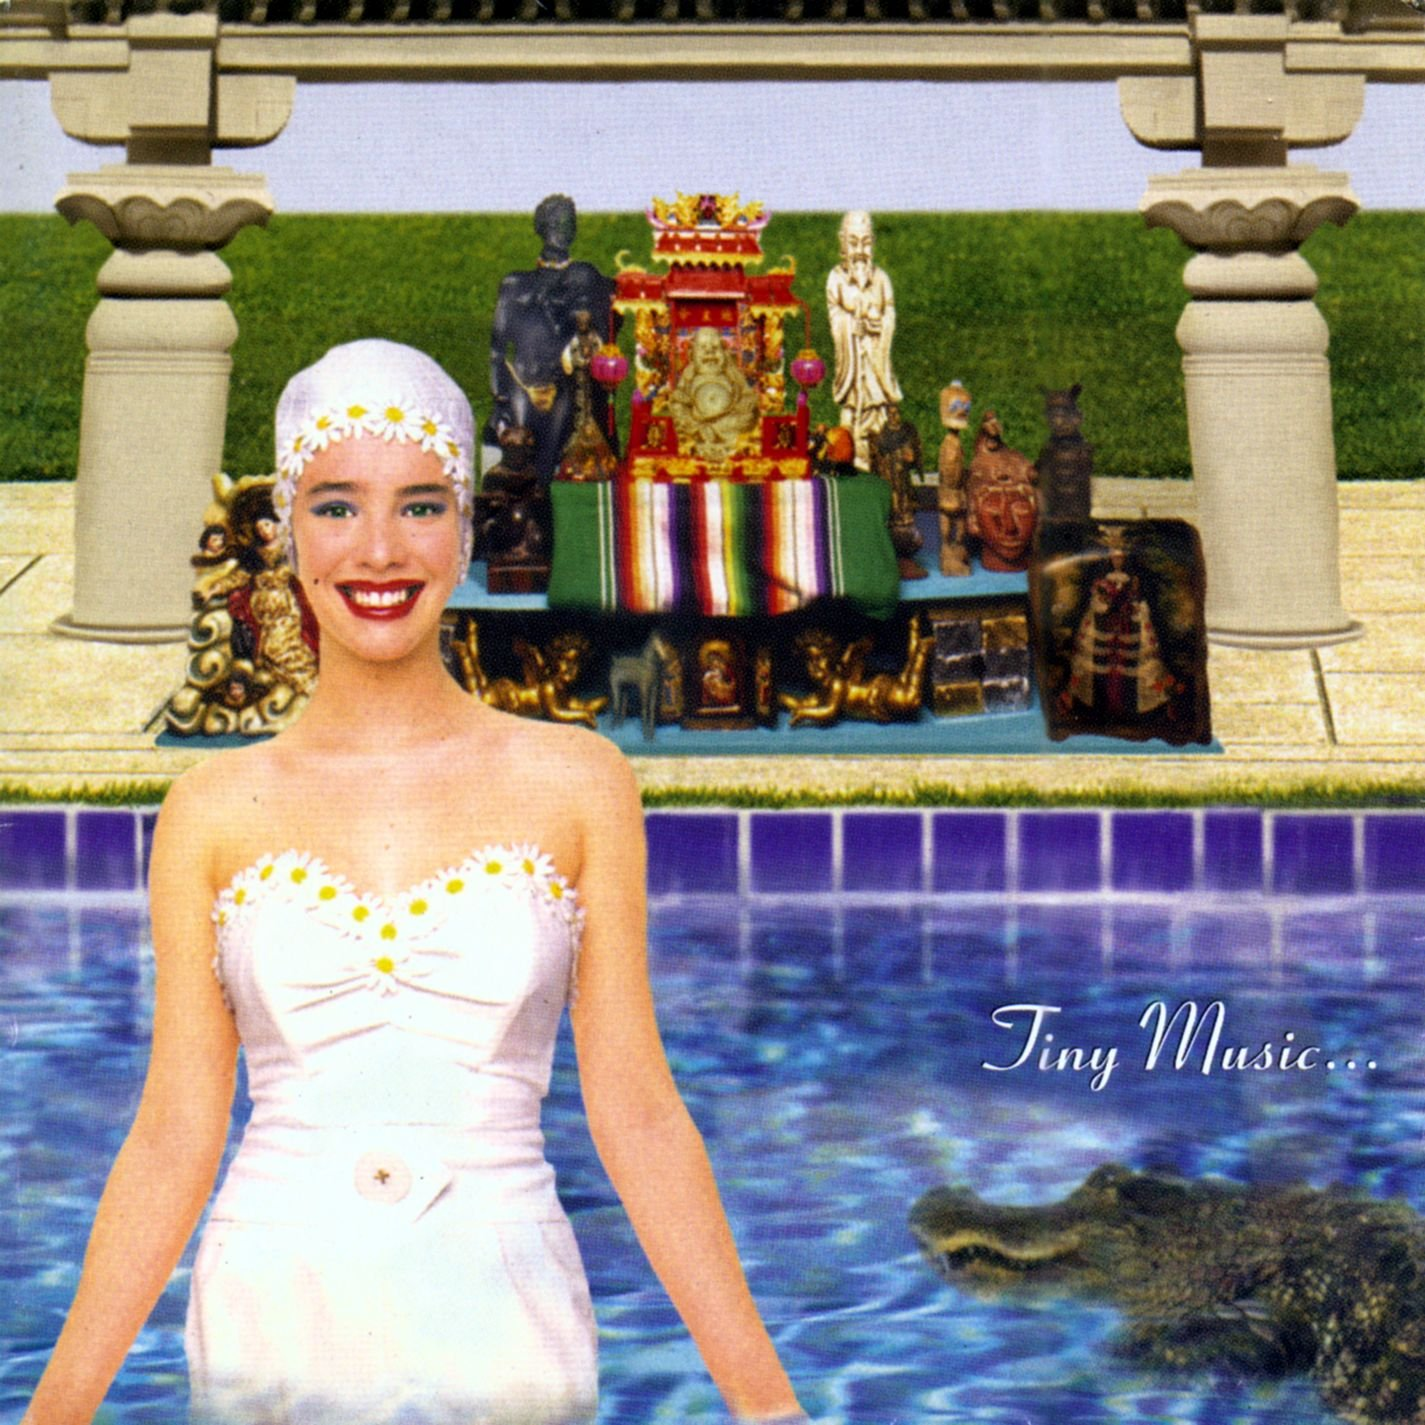 Stone Temple Pilots - Tiny Music album cover